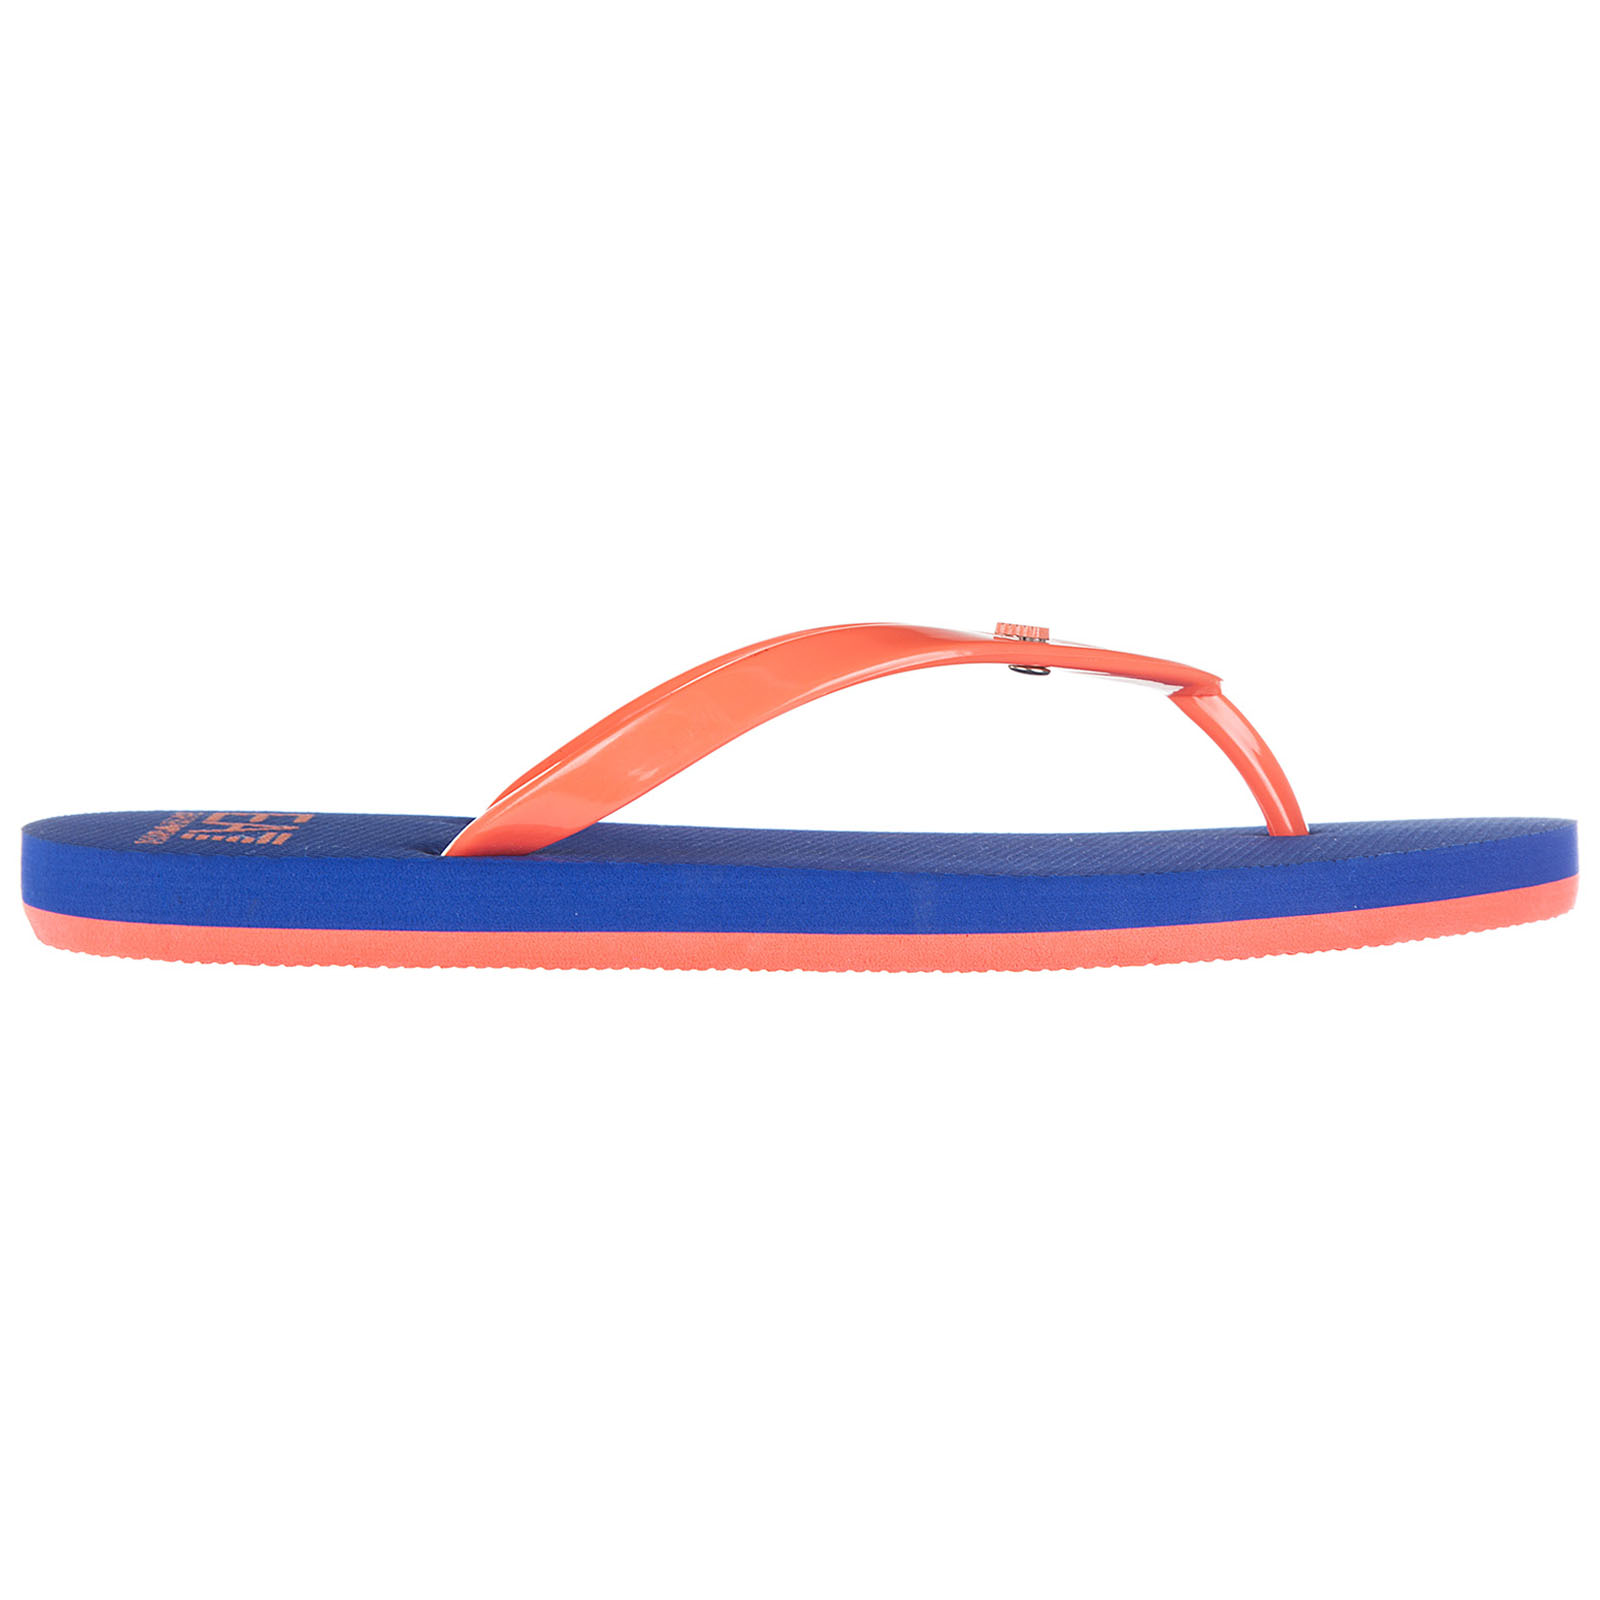 Tongs femme en caoutchouc sea world core act